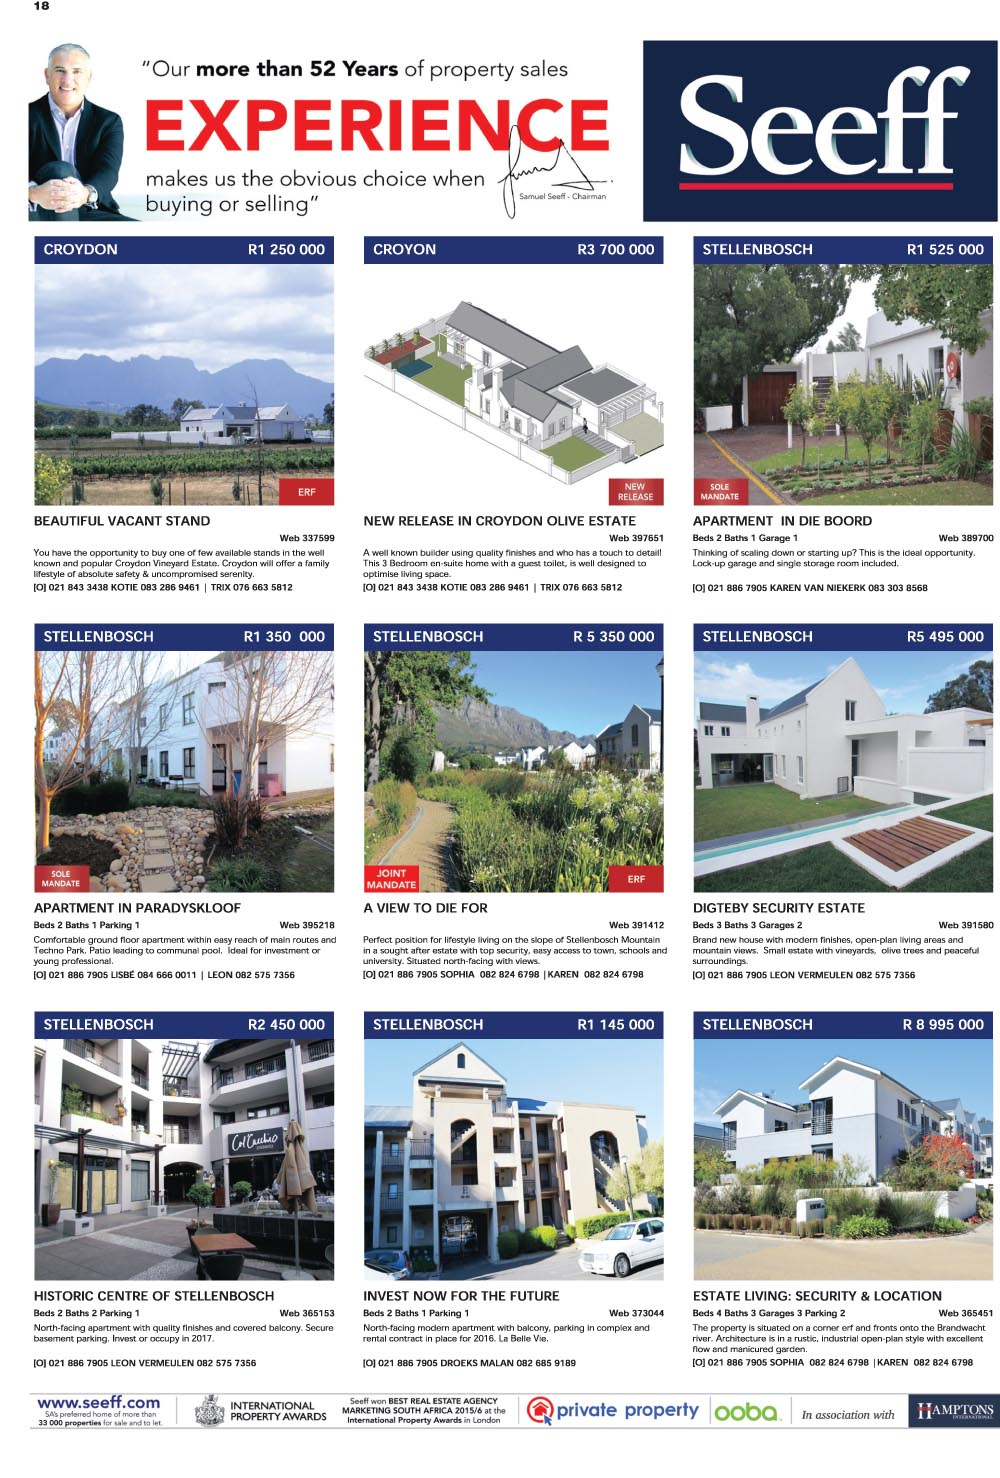 You are browsing images from the article: Property Selection 27th July 2016